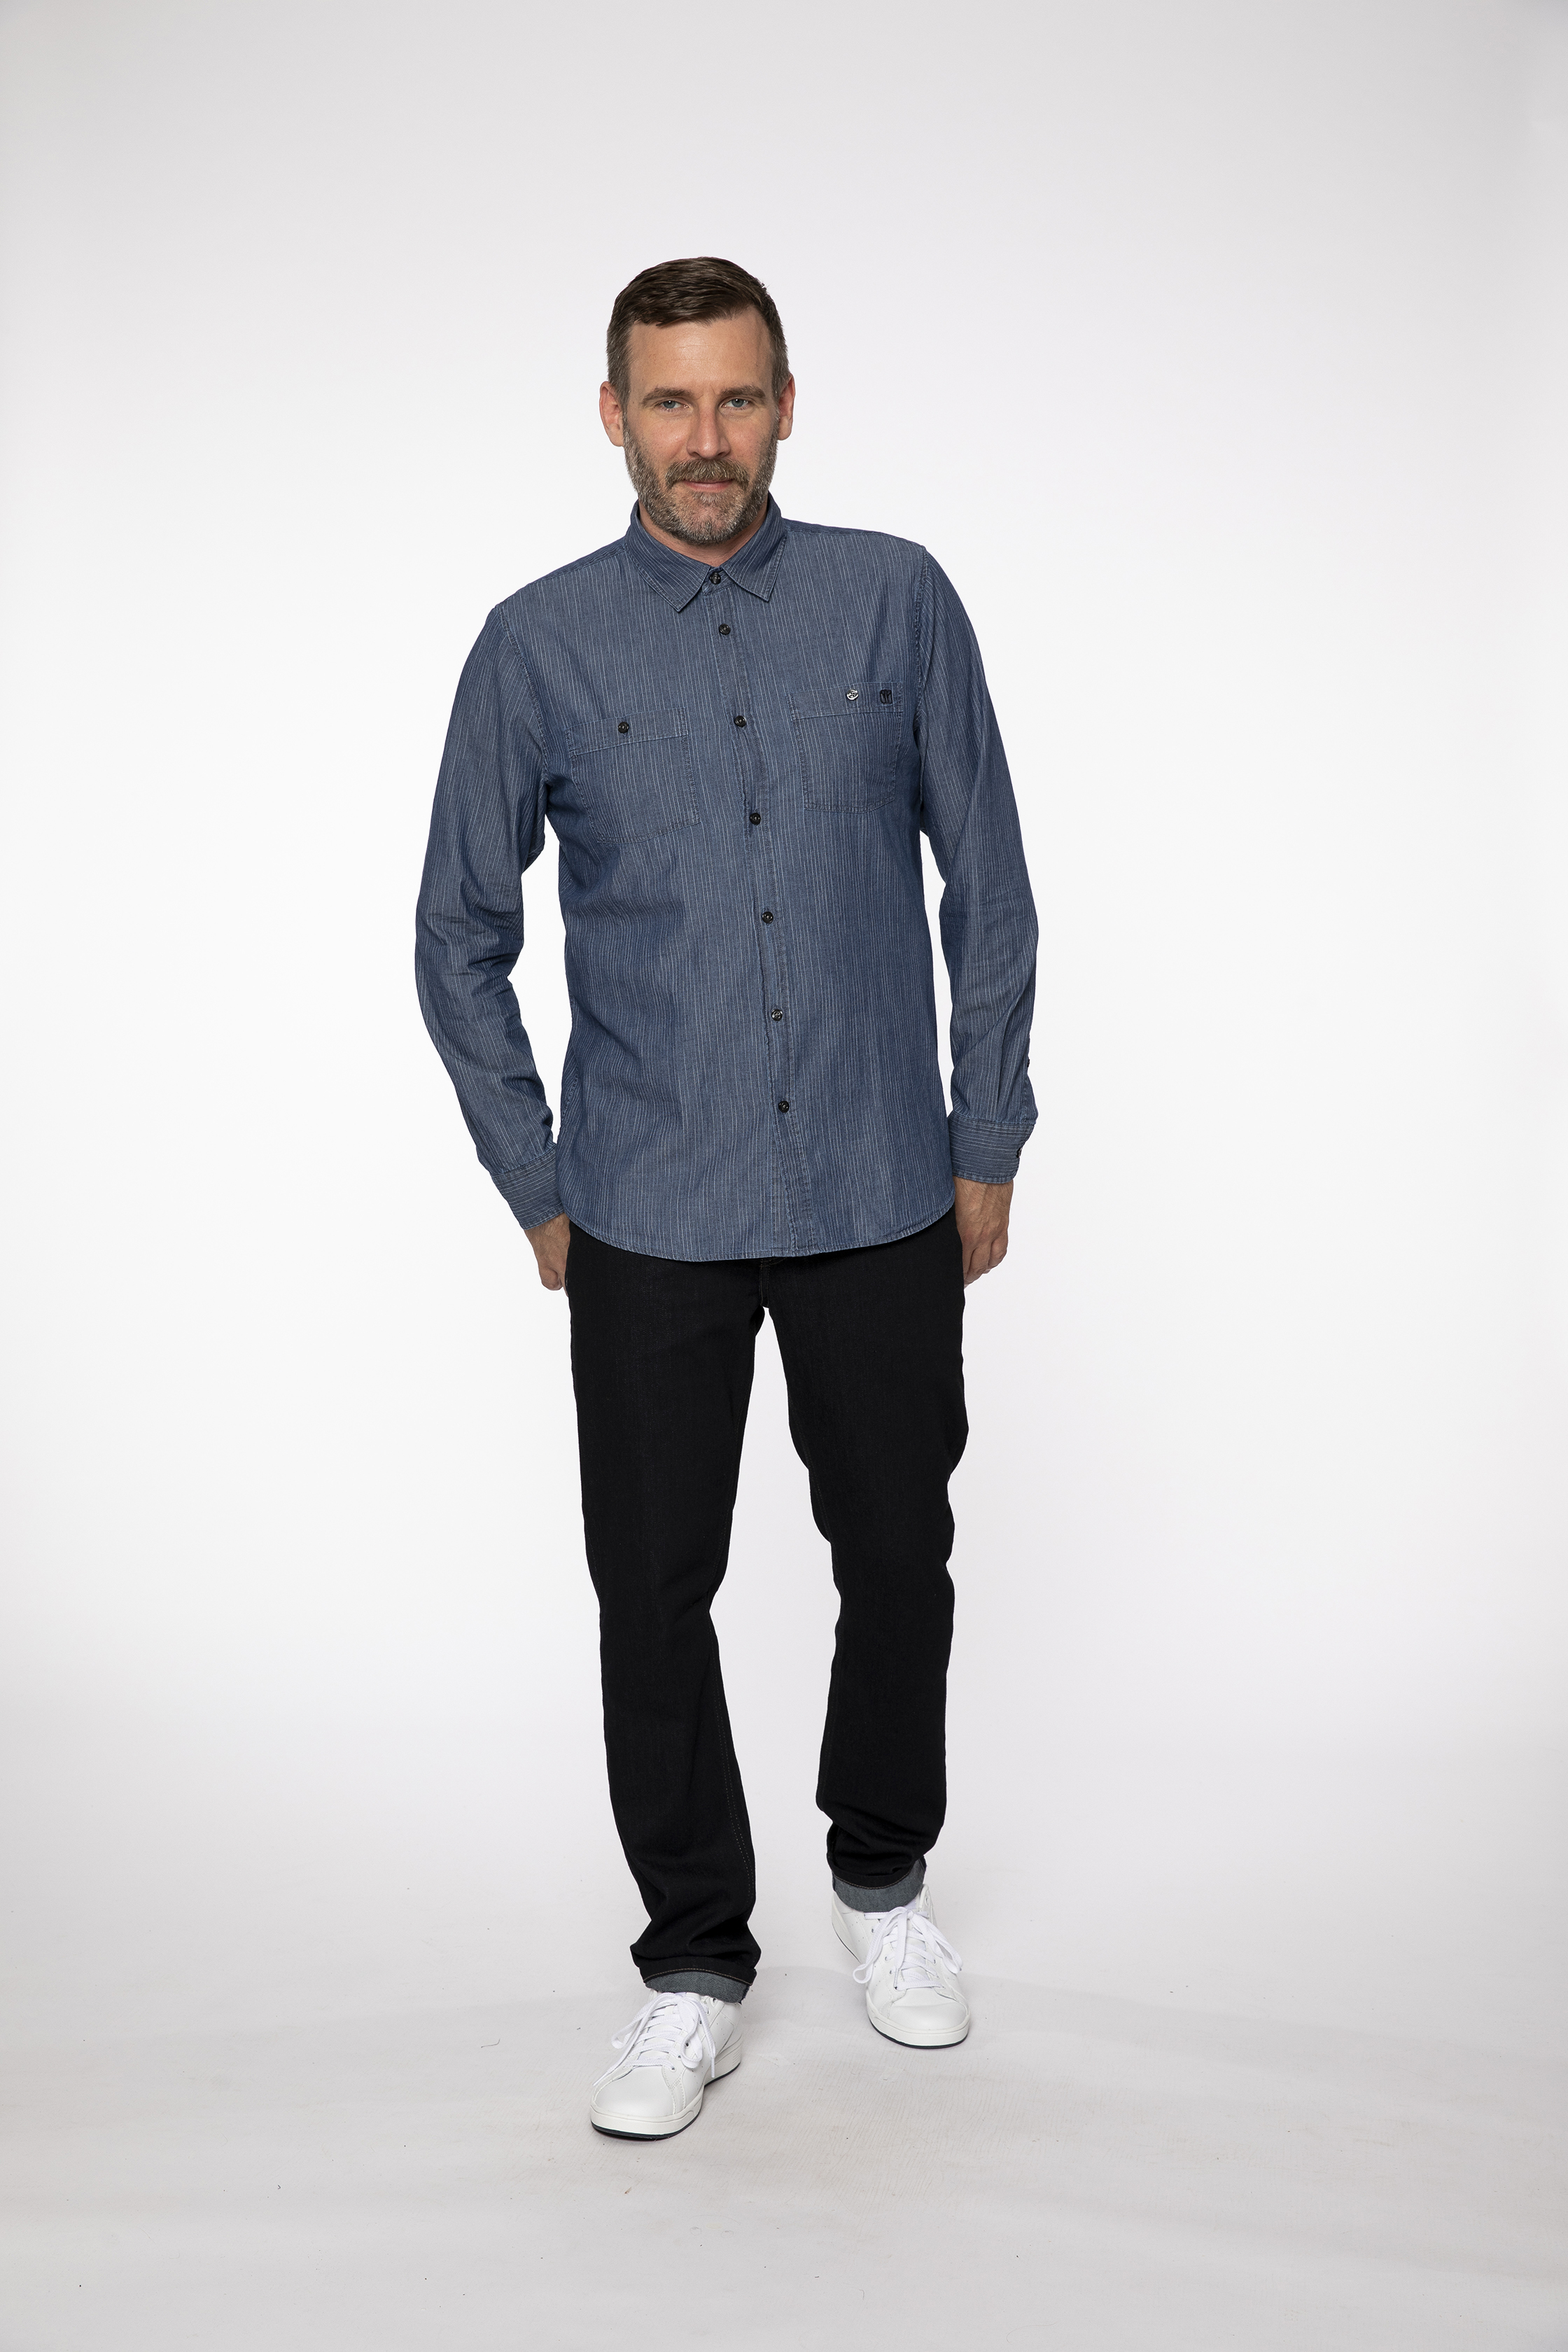 woven shirt:  TAILORMADE   denim pants:  COMPAGNON